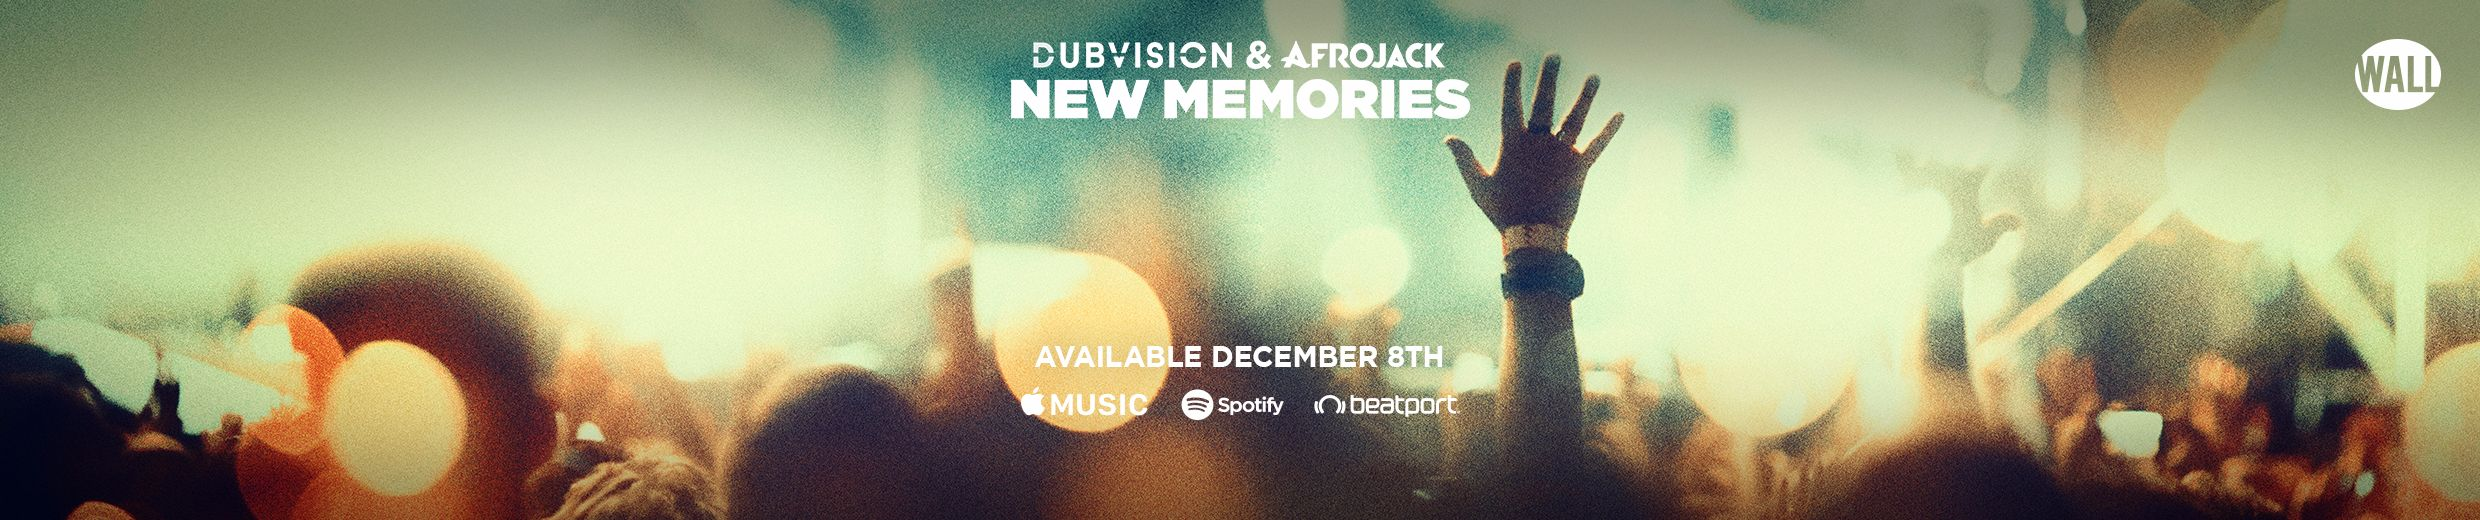 DUBVISION AND AFROJACK LINK UP TO CREATE 'NEW MEMORIES' ile ilgili görsel sonucu